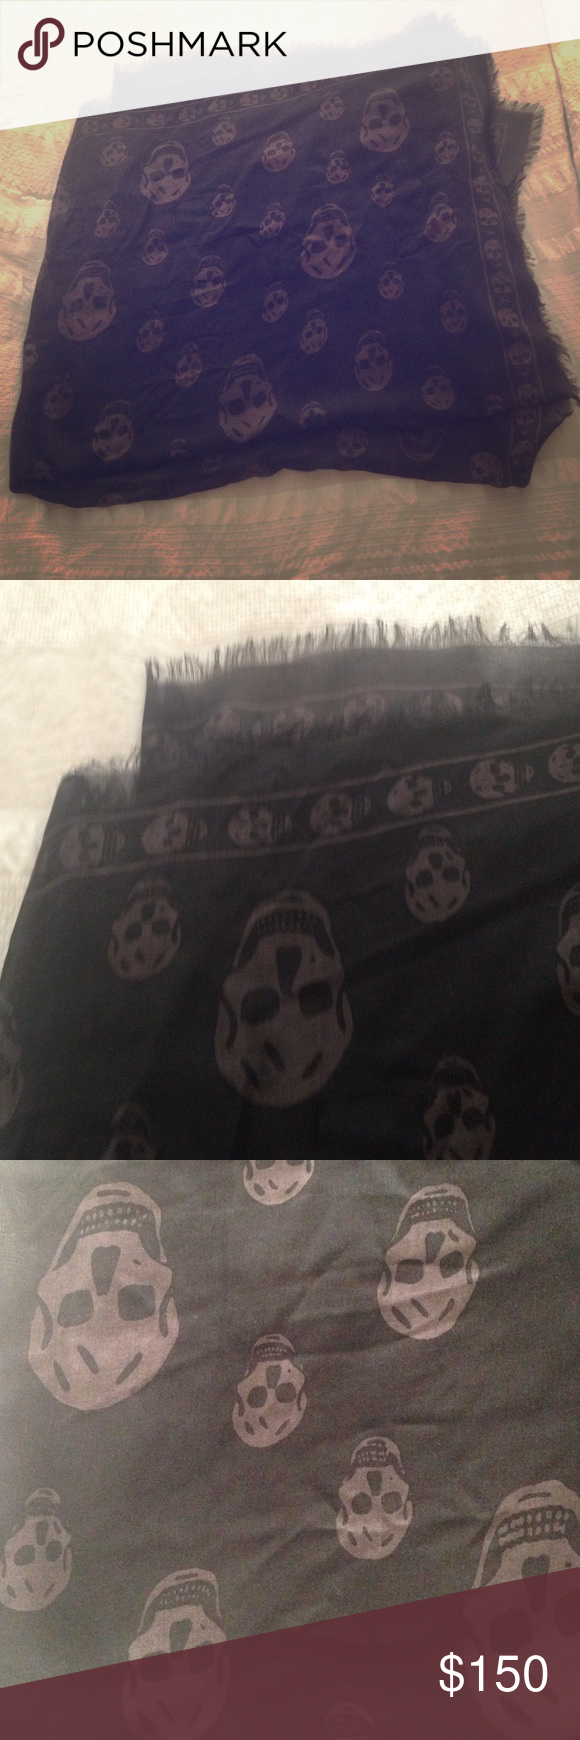 Alexander McQueen skull scarf Never wear, tag is off , no defects ! No label, no tag, but it is 100% authentic!!! Bought at Nordstrom Rack! Made with silk and modal I guess ! Alexander McQueen Accessories Scarves & Wraps